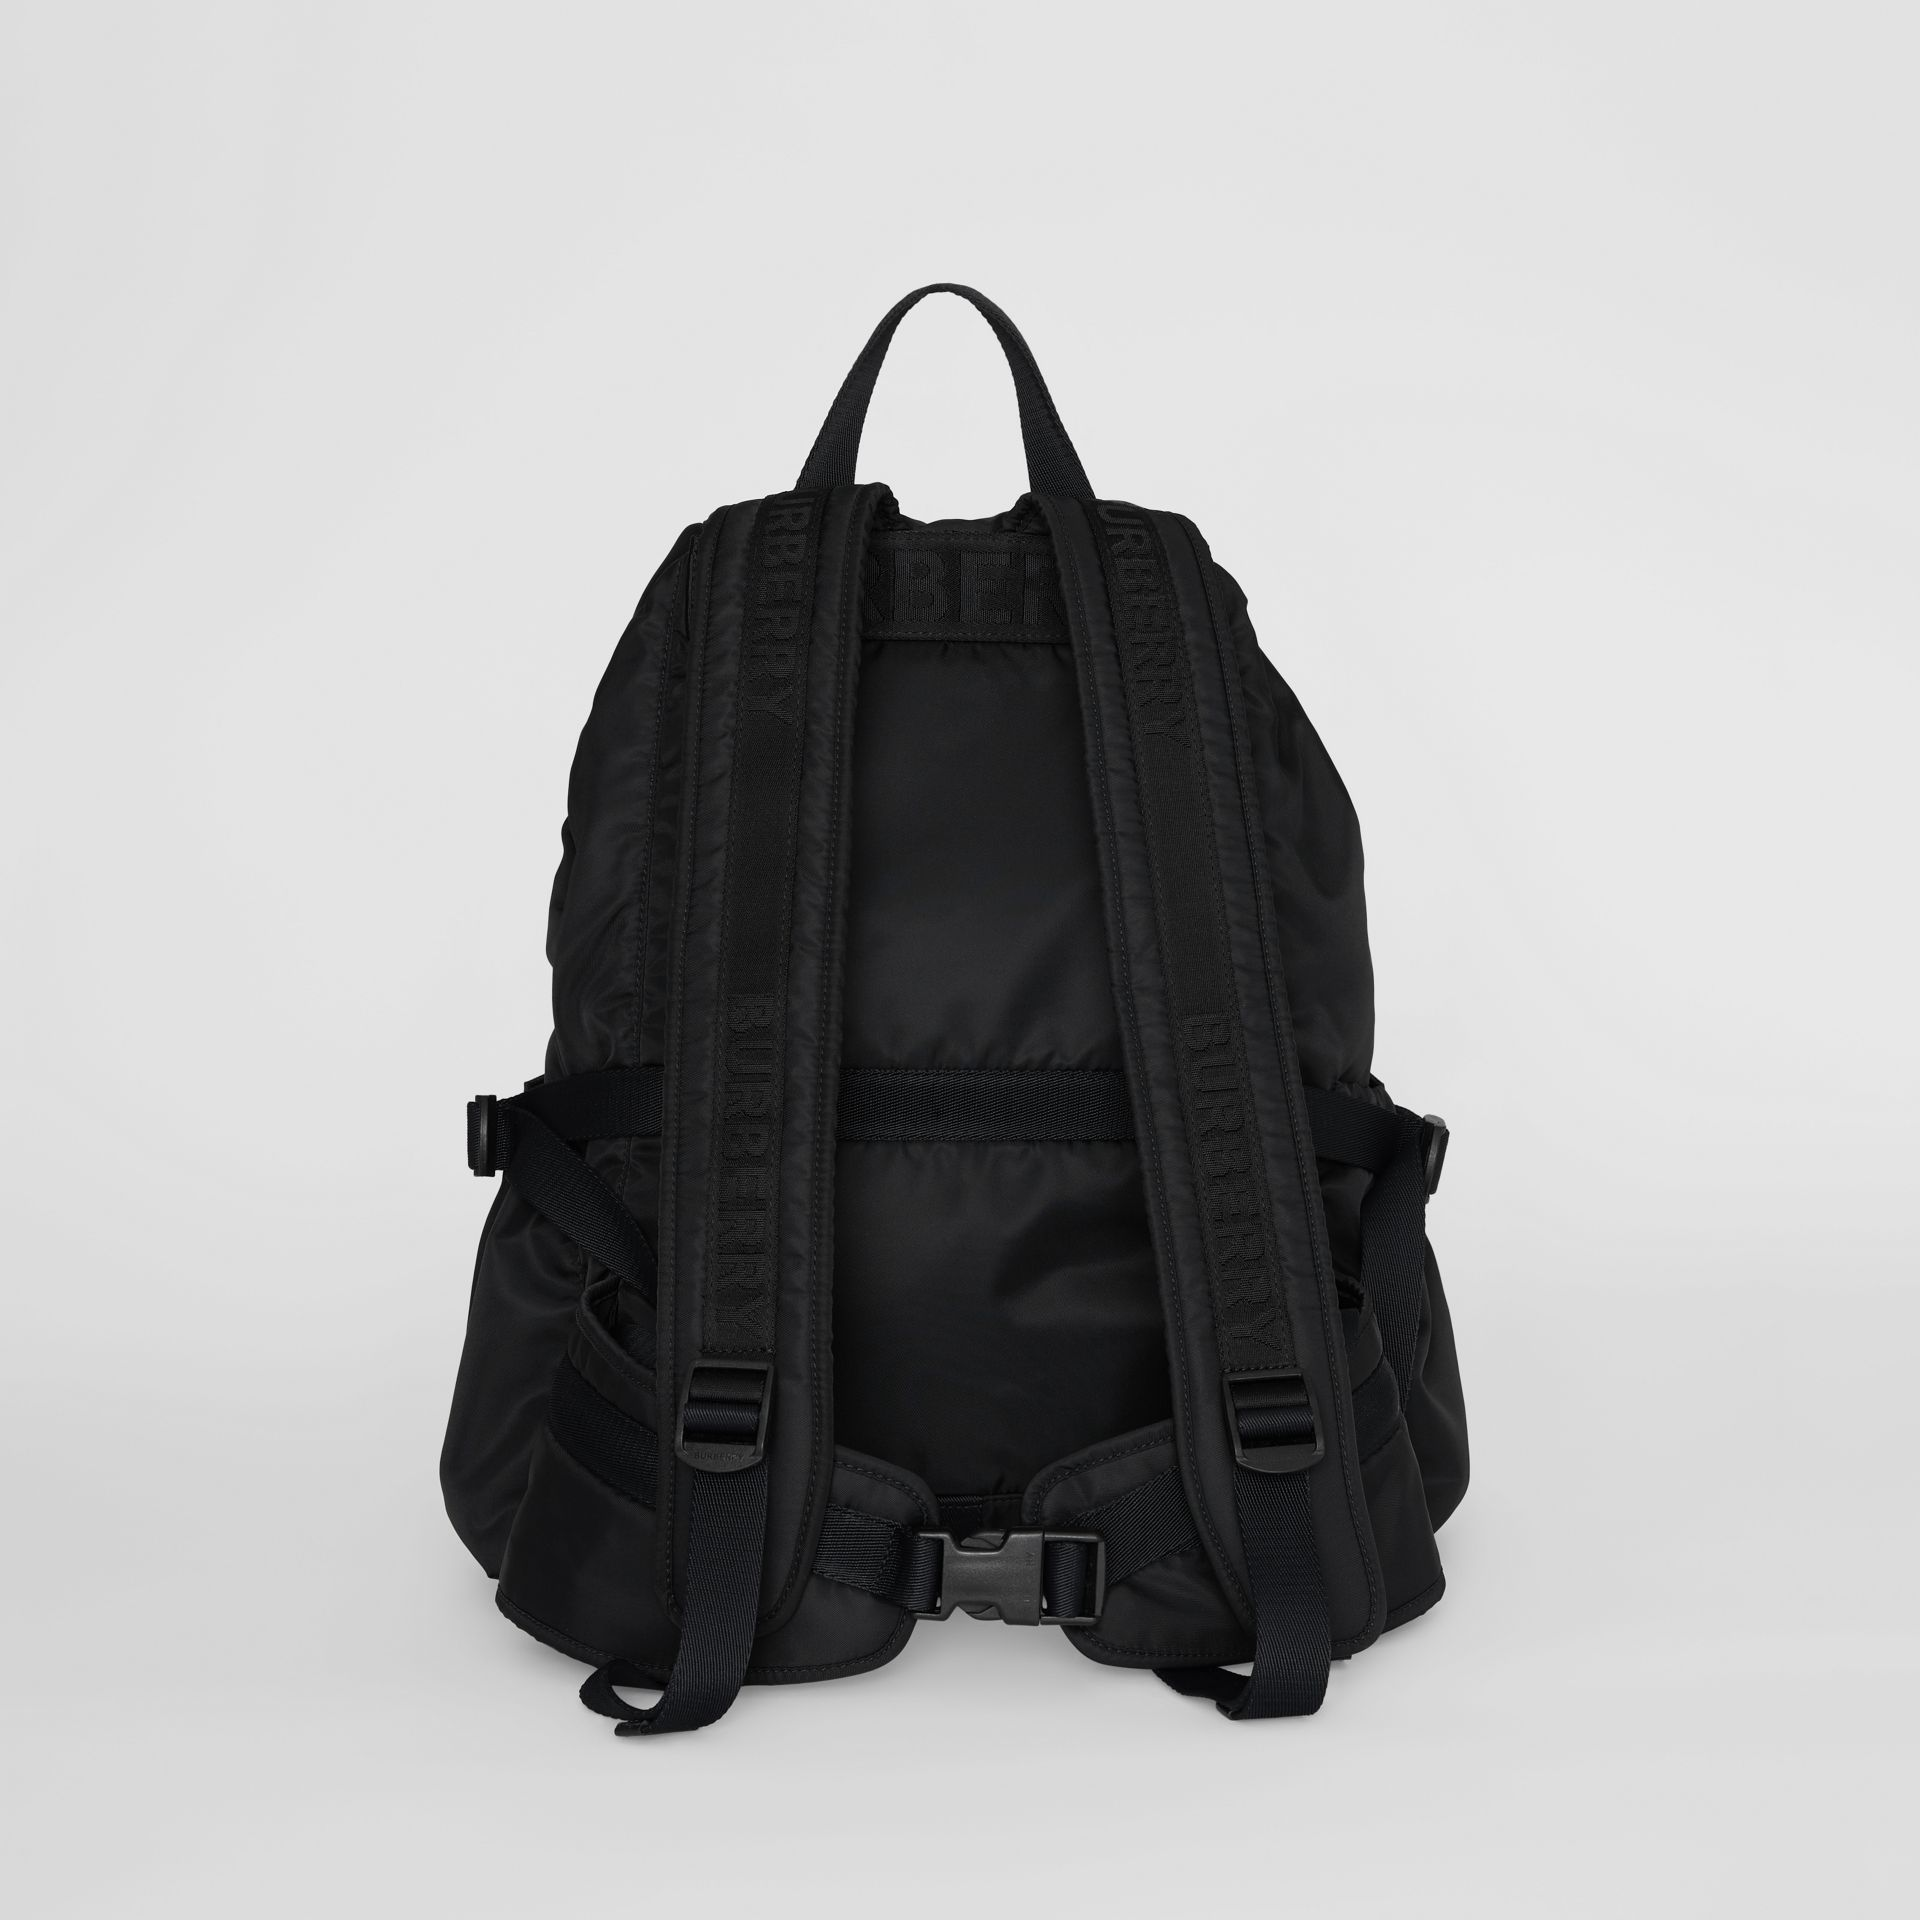 Logo Print Nylon Backpack in Black - Women | Burberry - gallery image 5